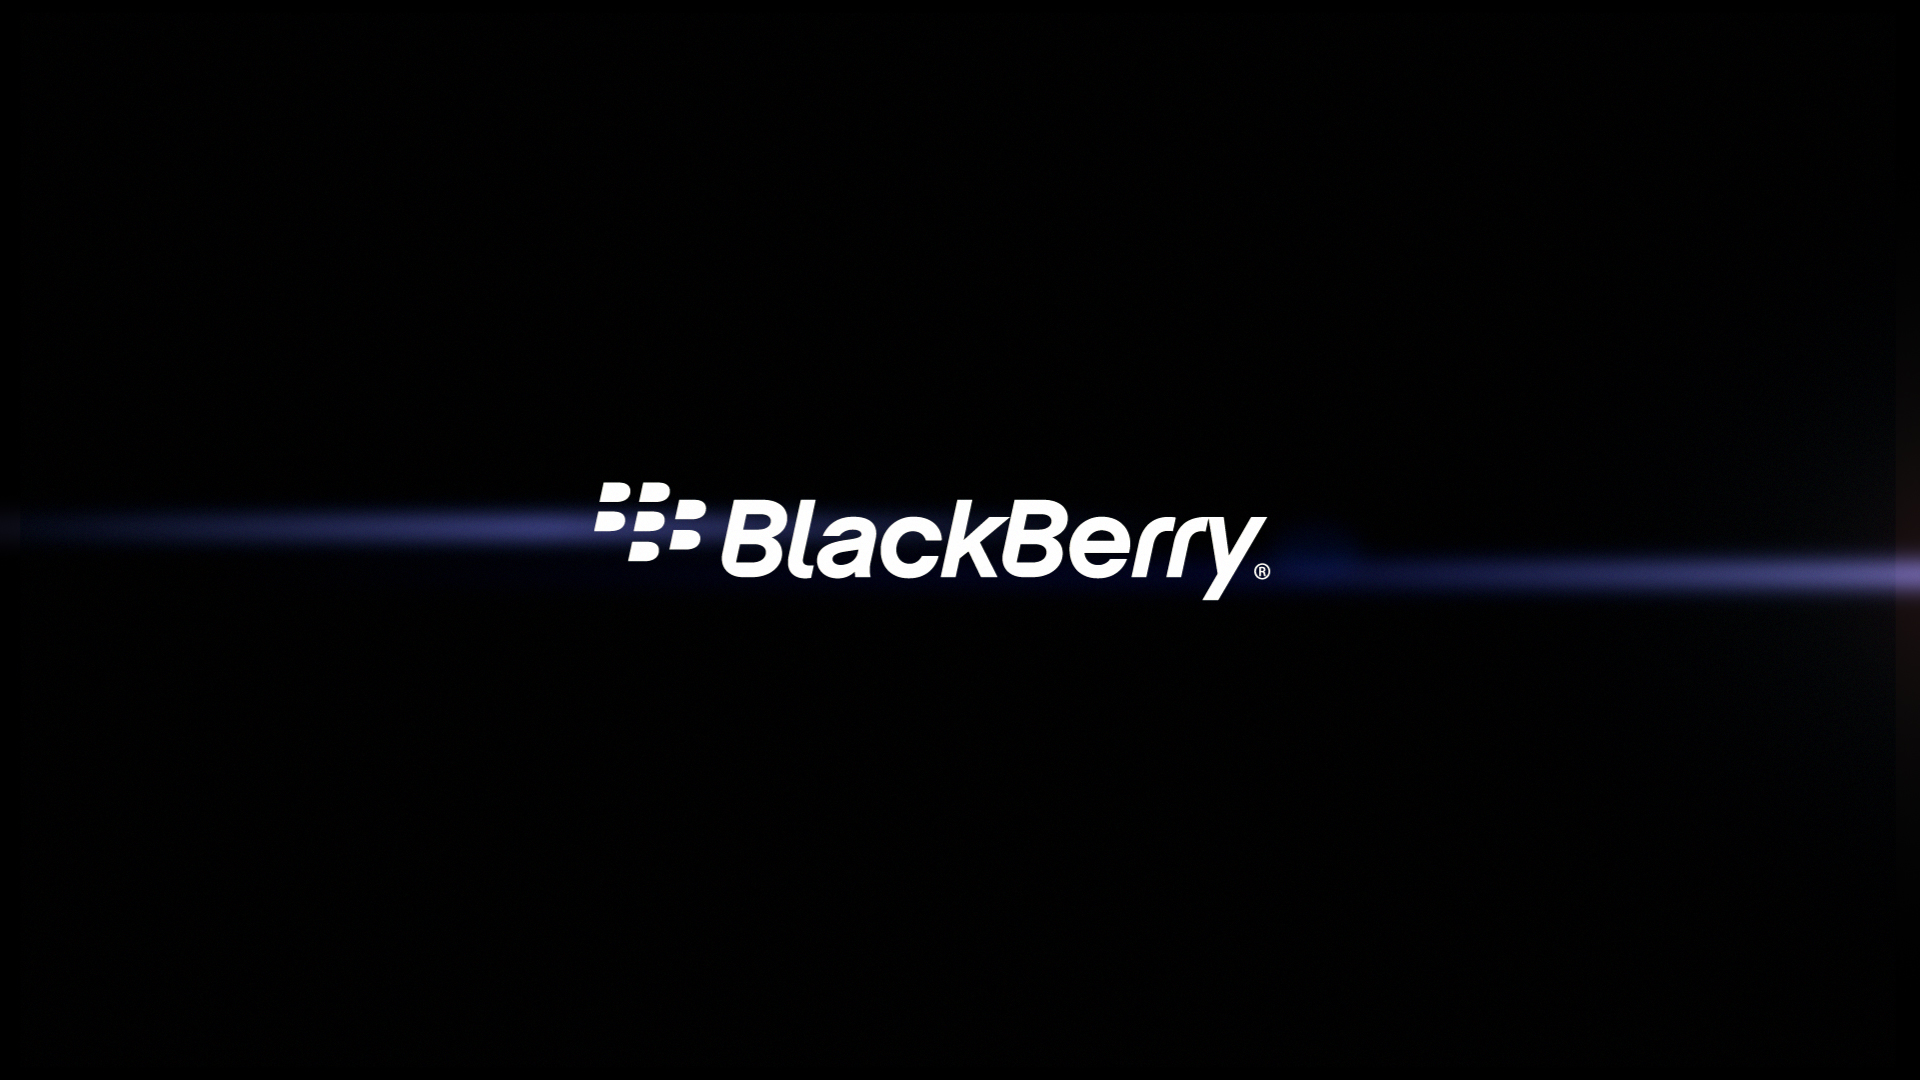 how to open blackberry z10 picture on pc